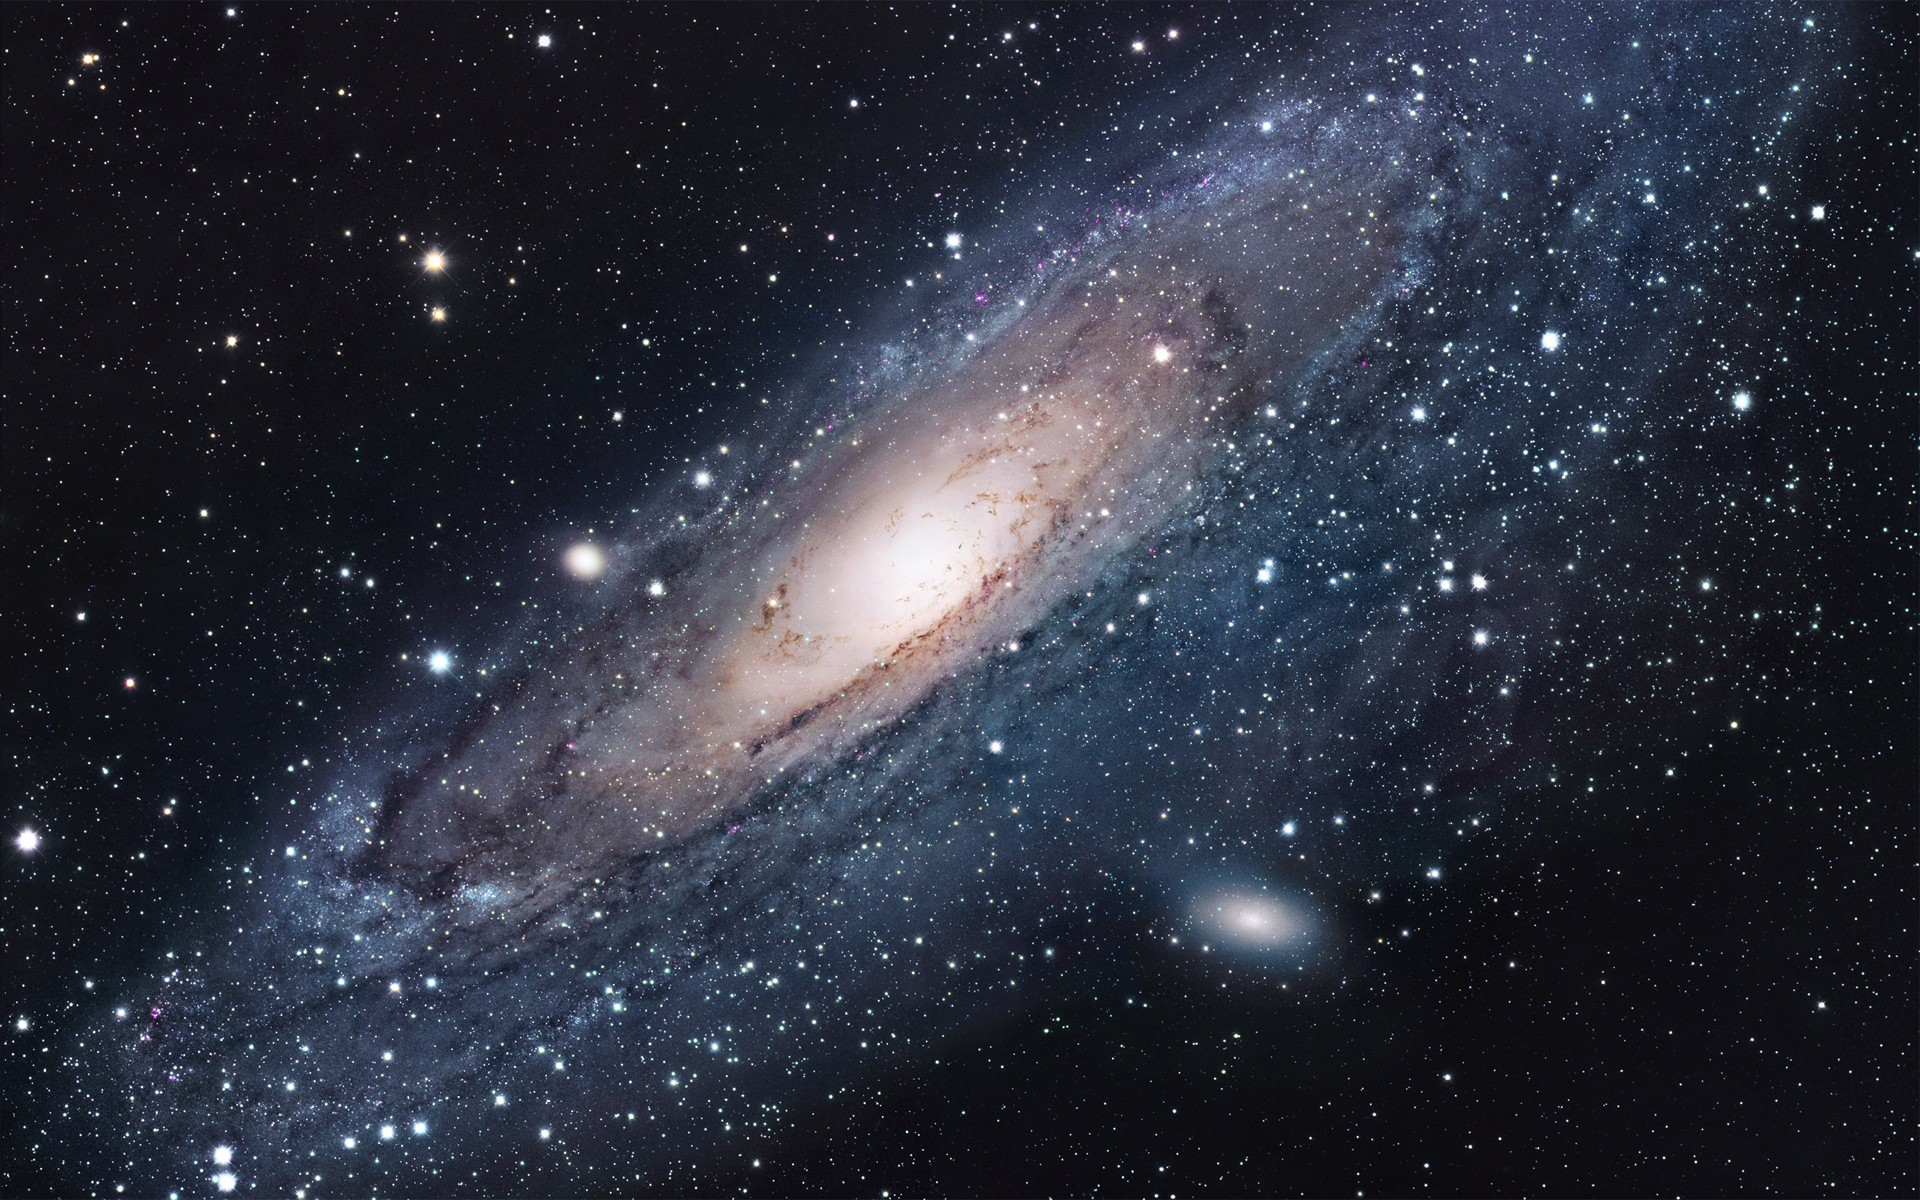 Image: http://www.desktopwallpaperhd.net/wallpapers/18/d/andromeda-space-background-computer-images-187549.jpg